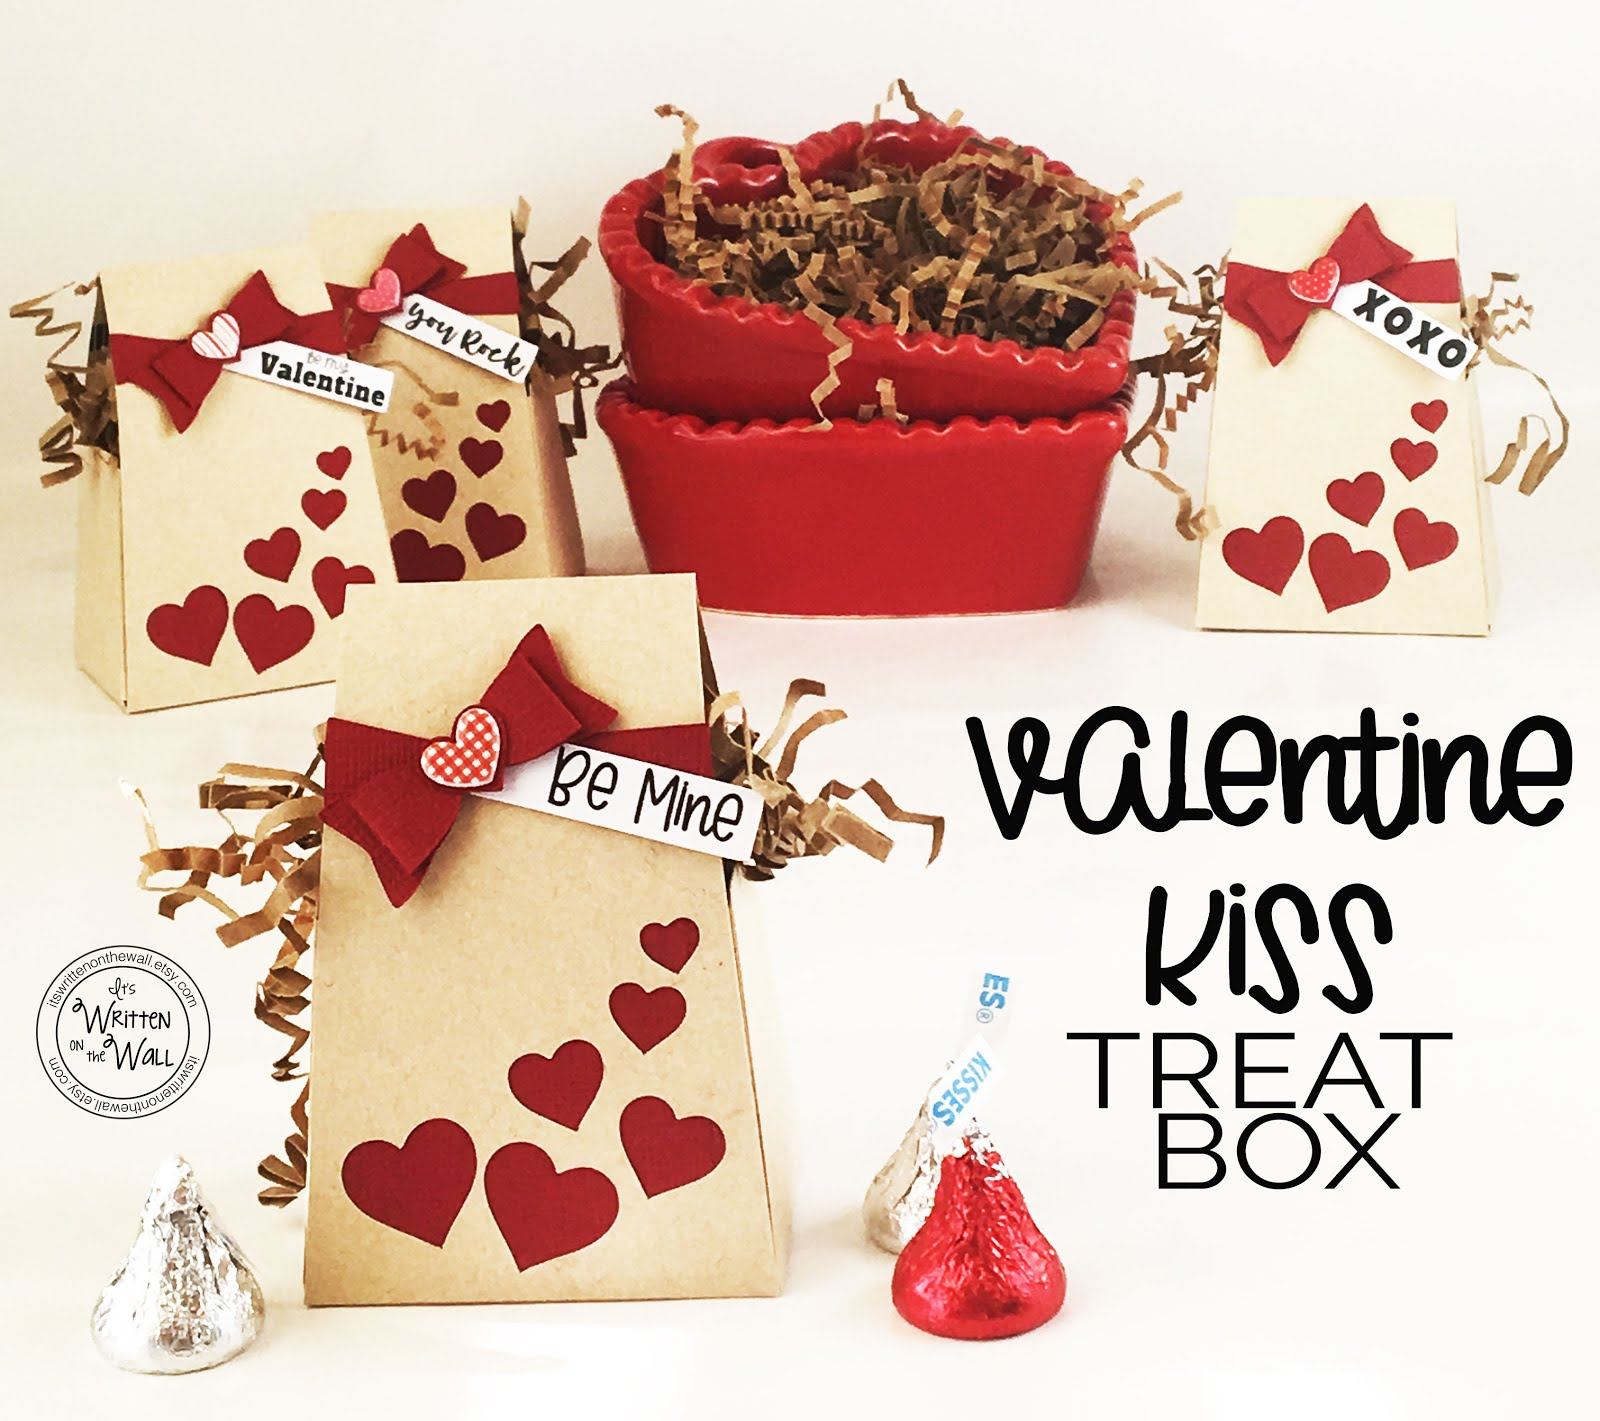 Valentine Treat Box & Gift